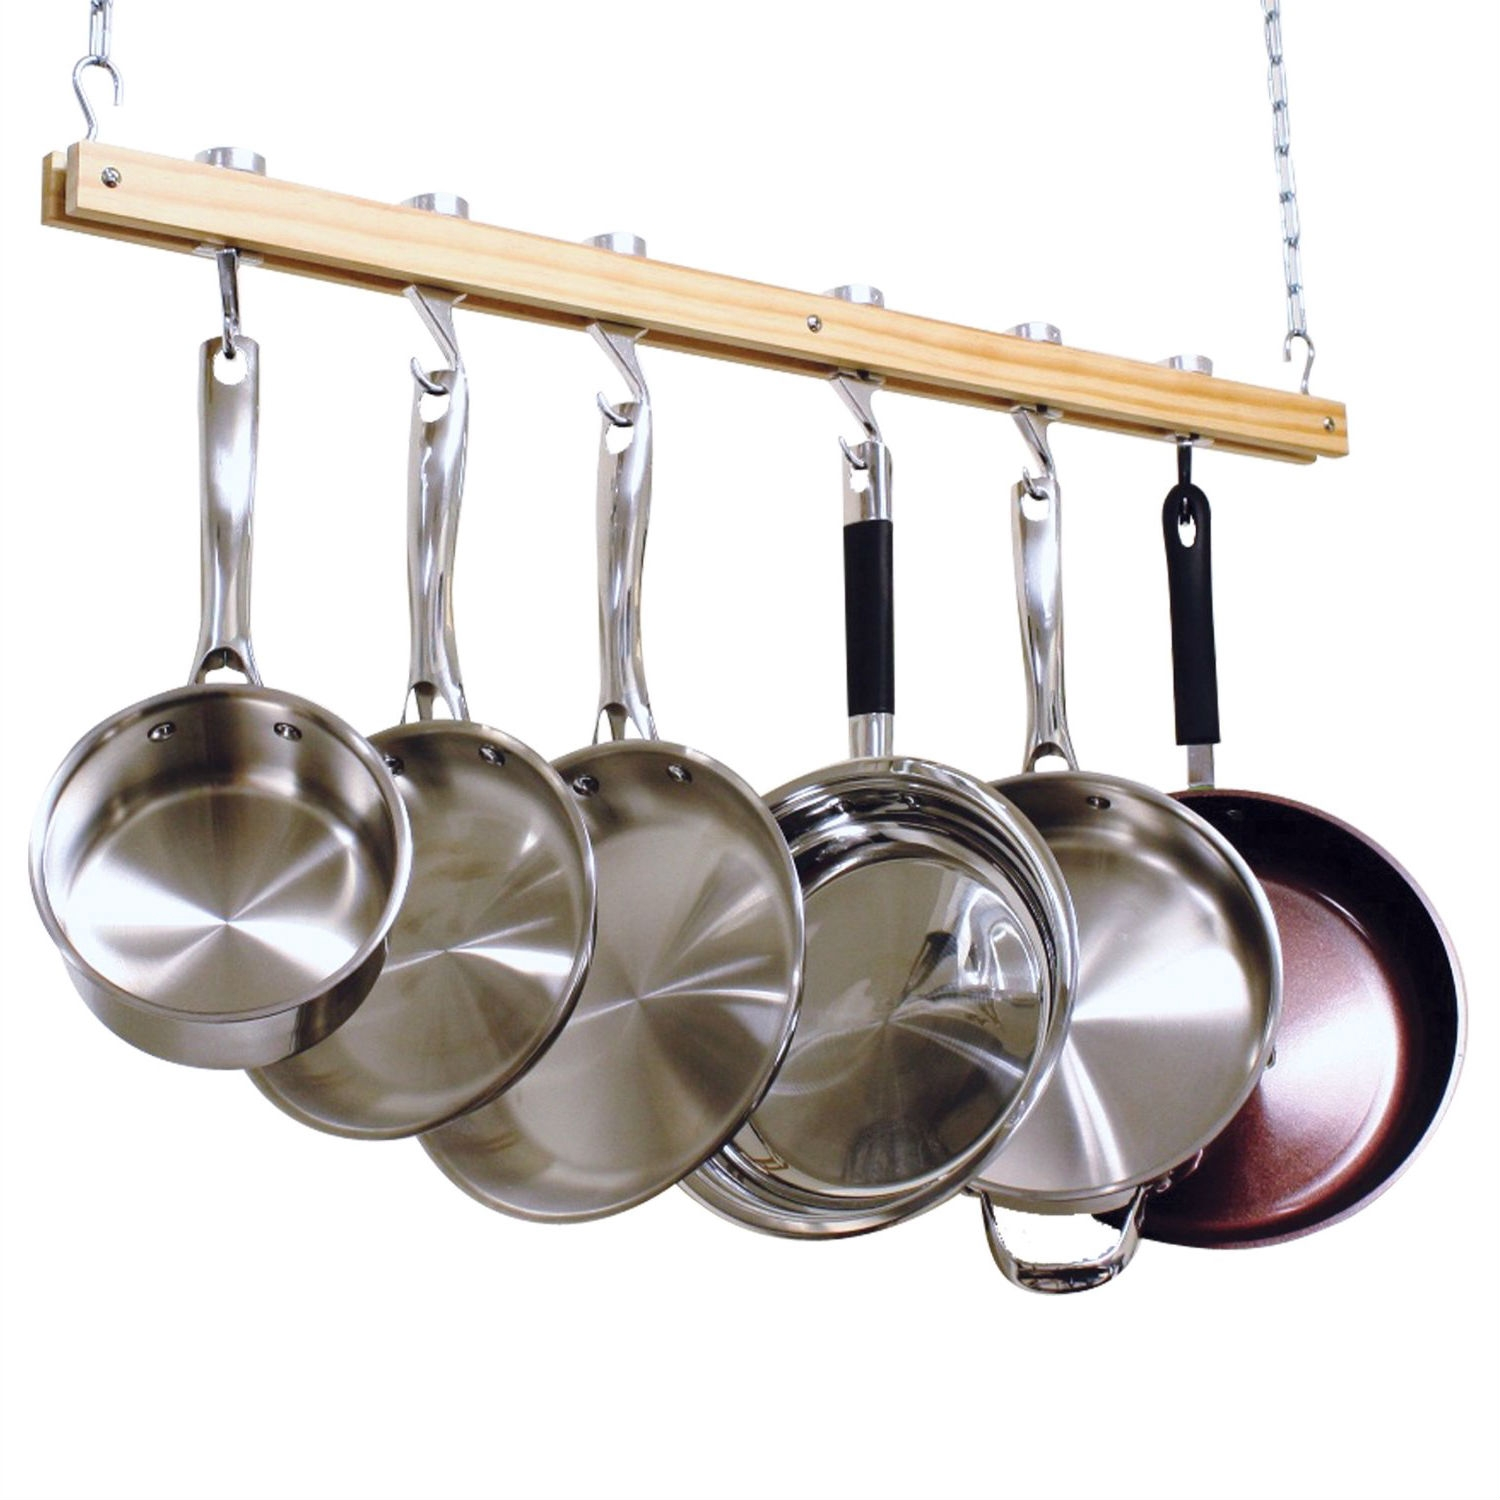 wayfair lights pdx pan hanging tabletop highlands pot reviews with kitchen rack laurel woodshop and